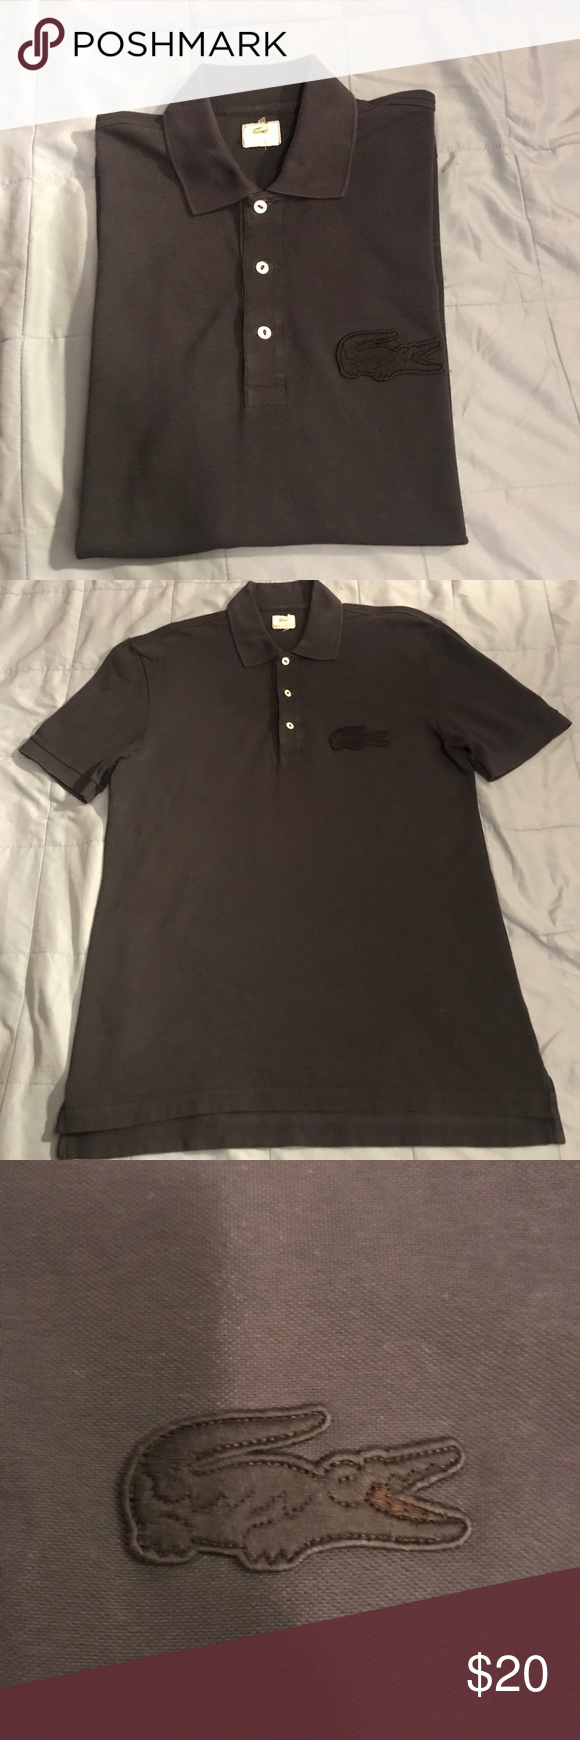 21facd9af74 Where Are Genuine Lacoste Polo Shirts Made